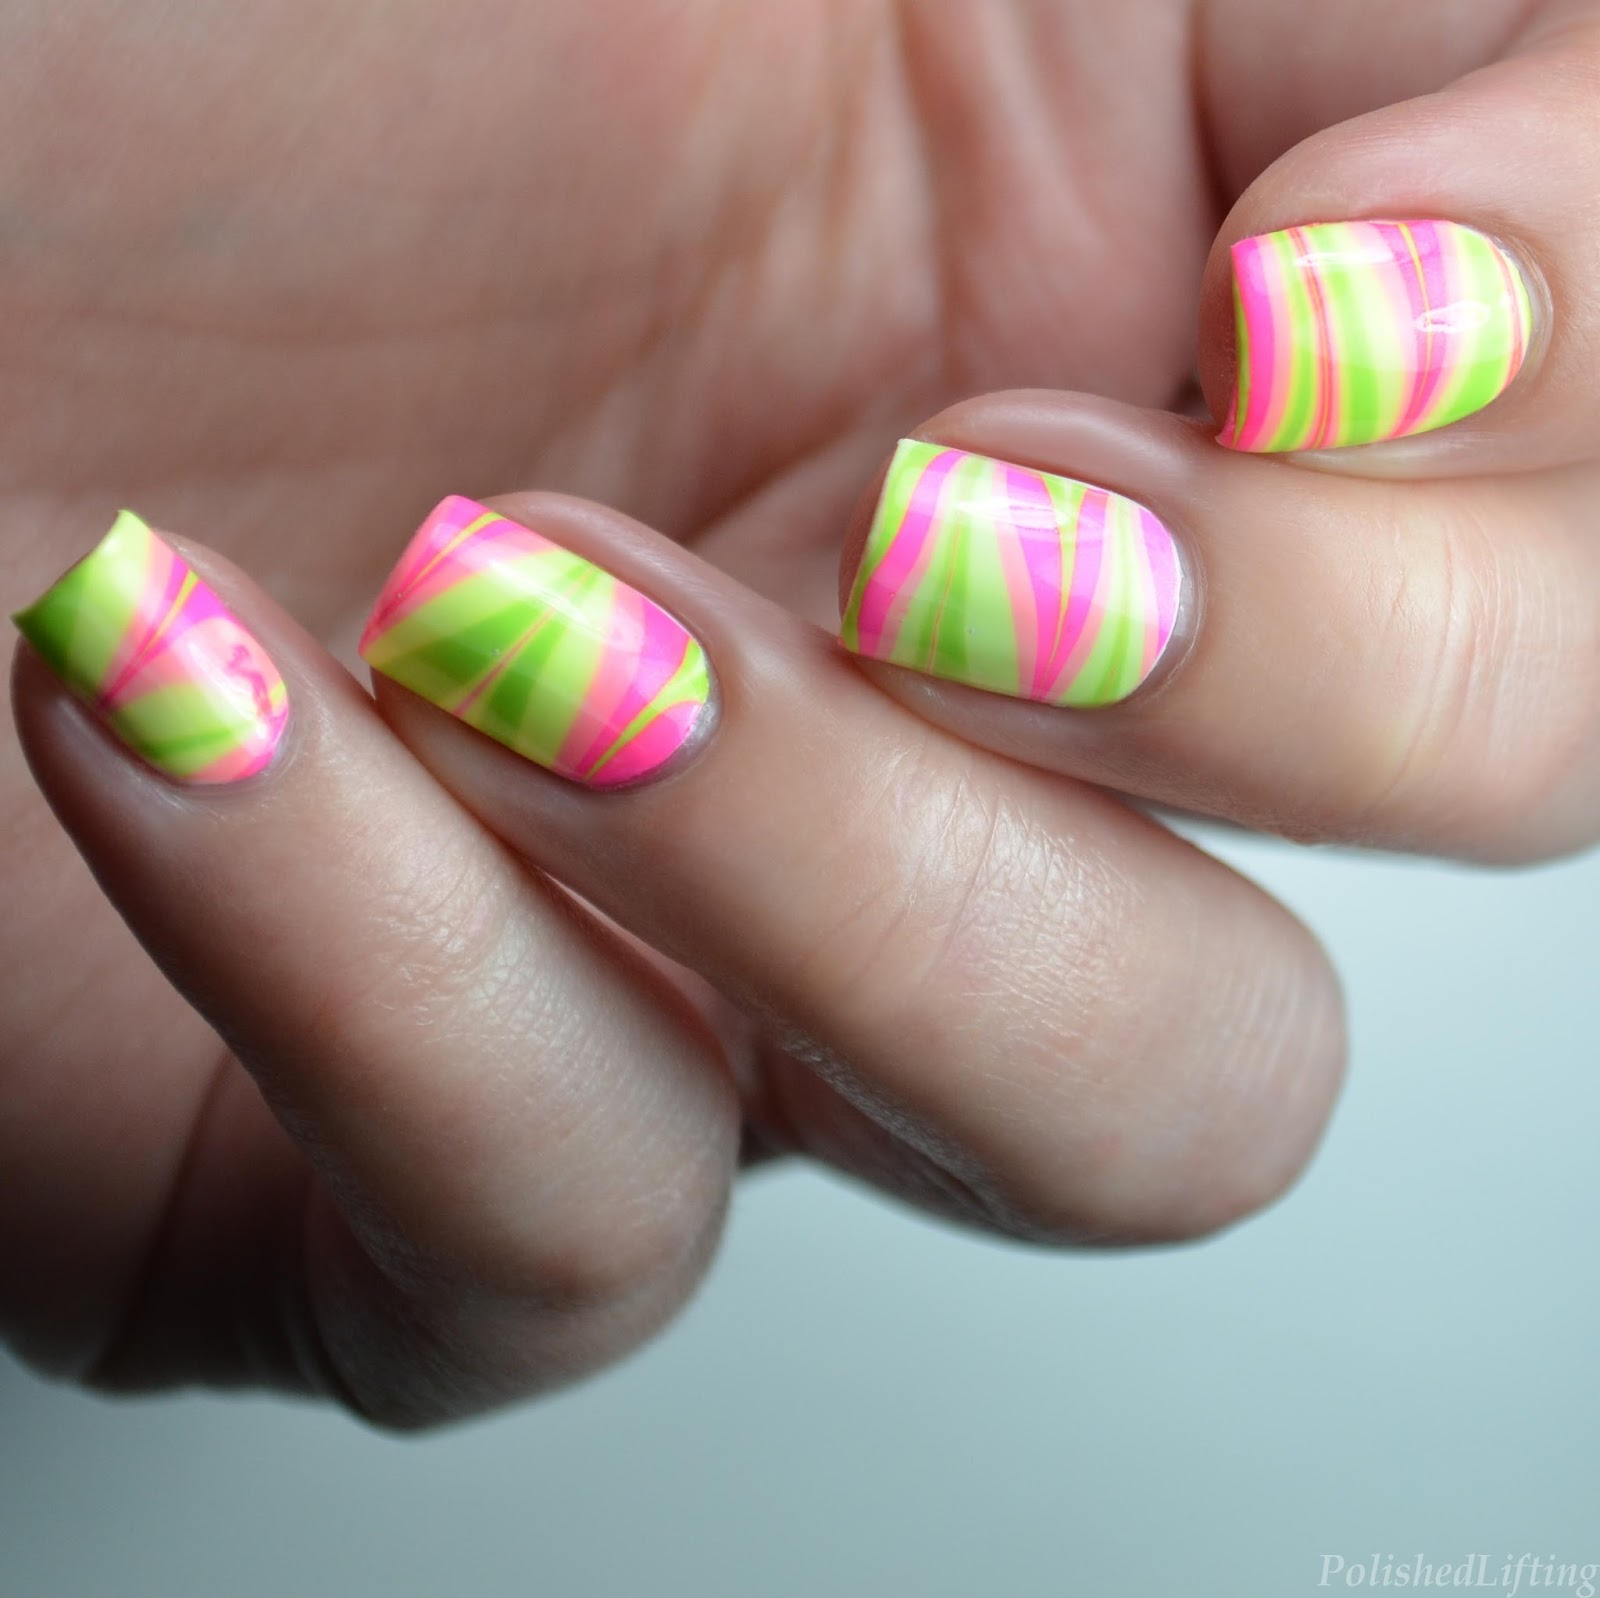 Polished Lifting: Neon Water Marble featuring Native War Paints